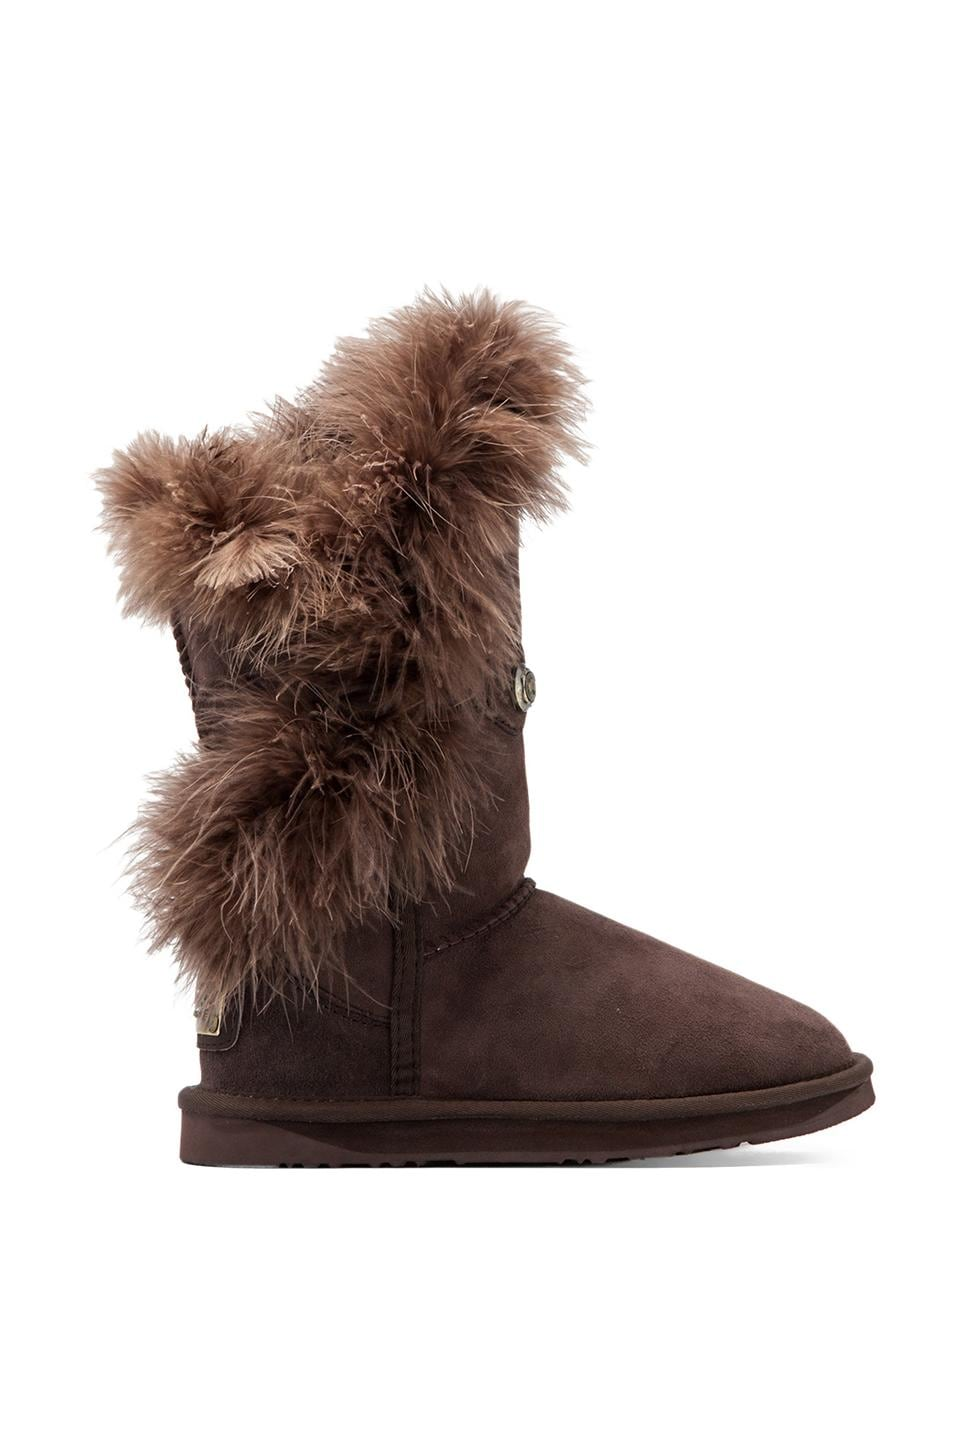 Australia Luxe Collective Nordic Feather Short Boot with Sheep Shearling  in Beva